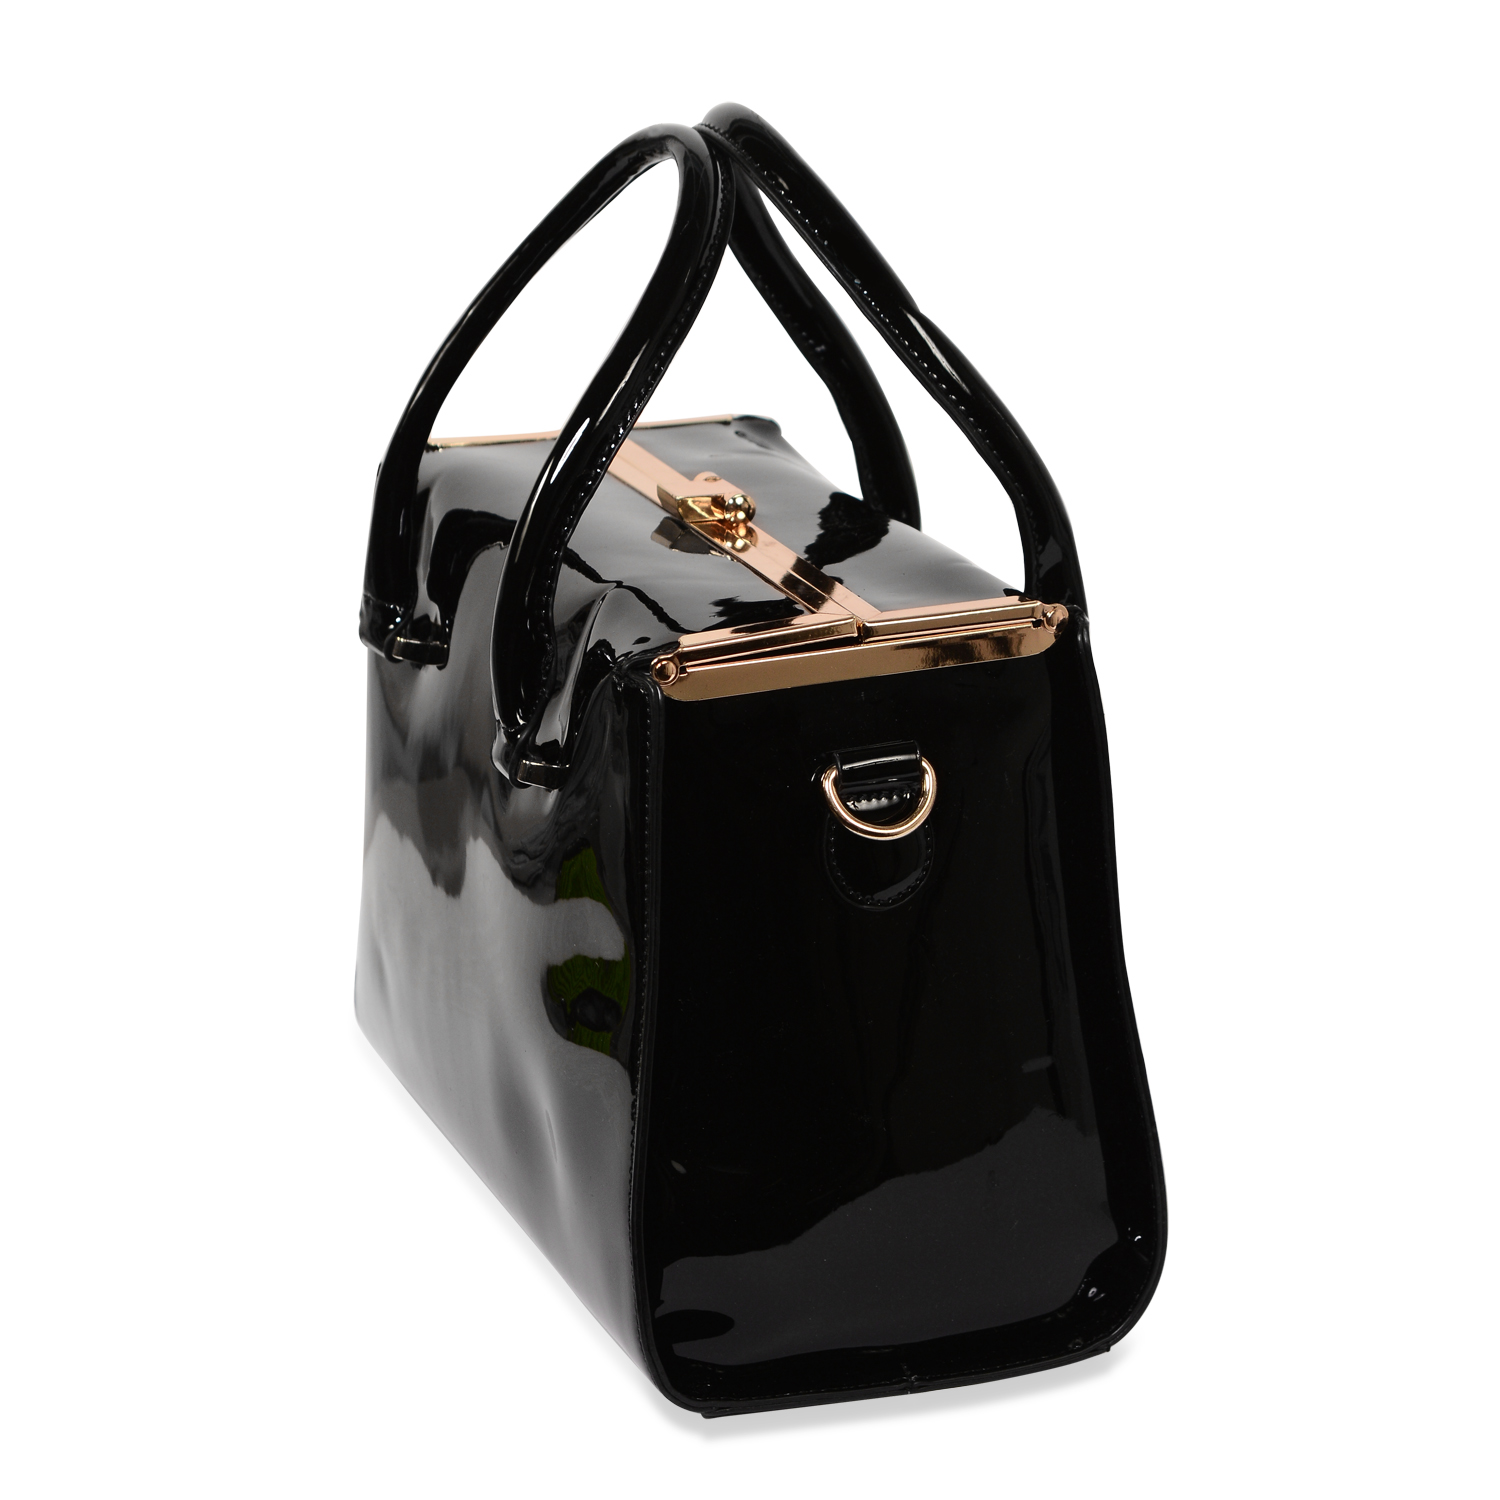 J Francis - Black Faux Leather Tote Bag (13x6x9 in)